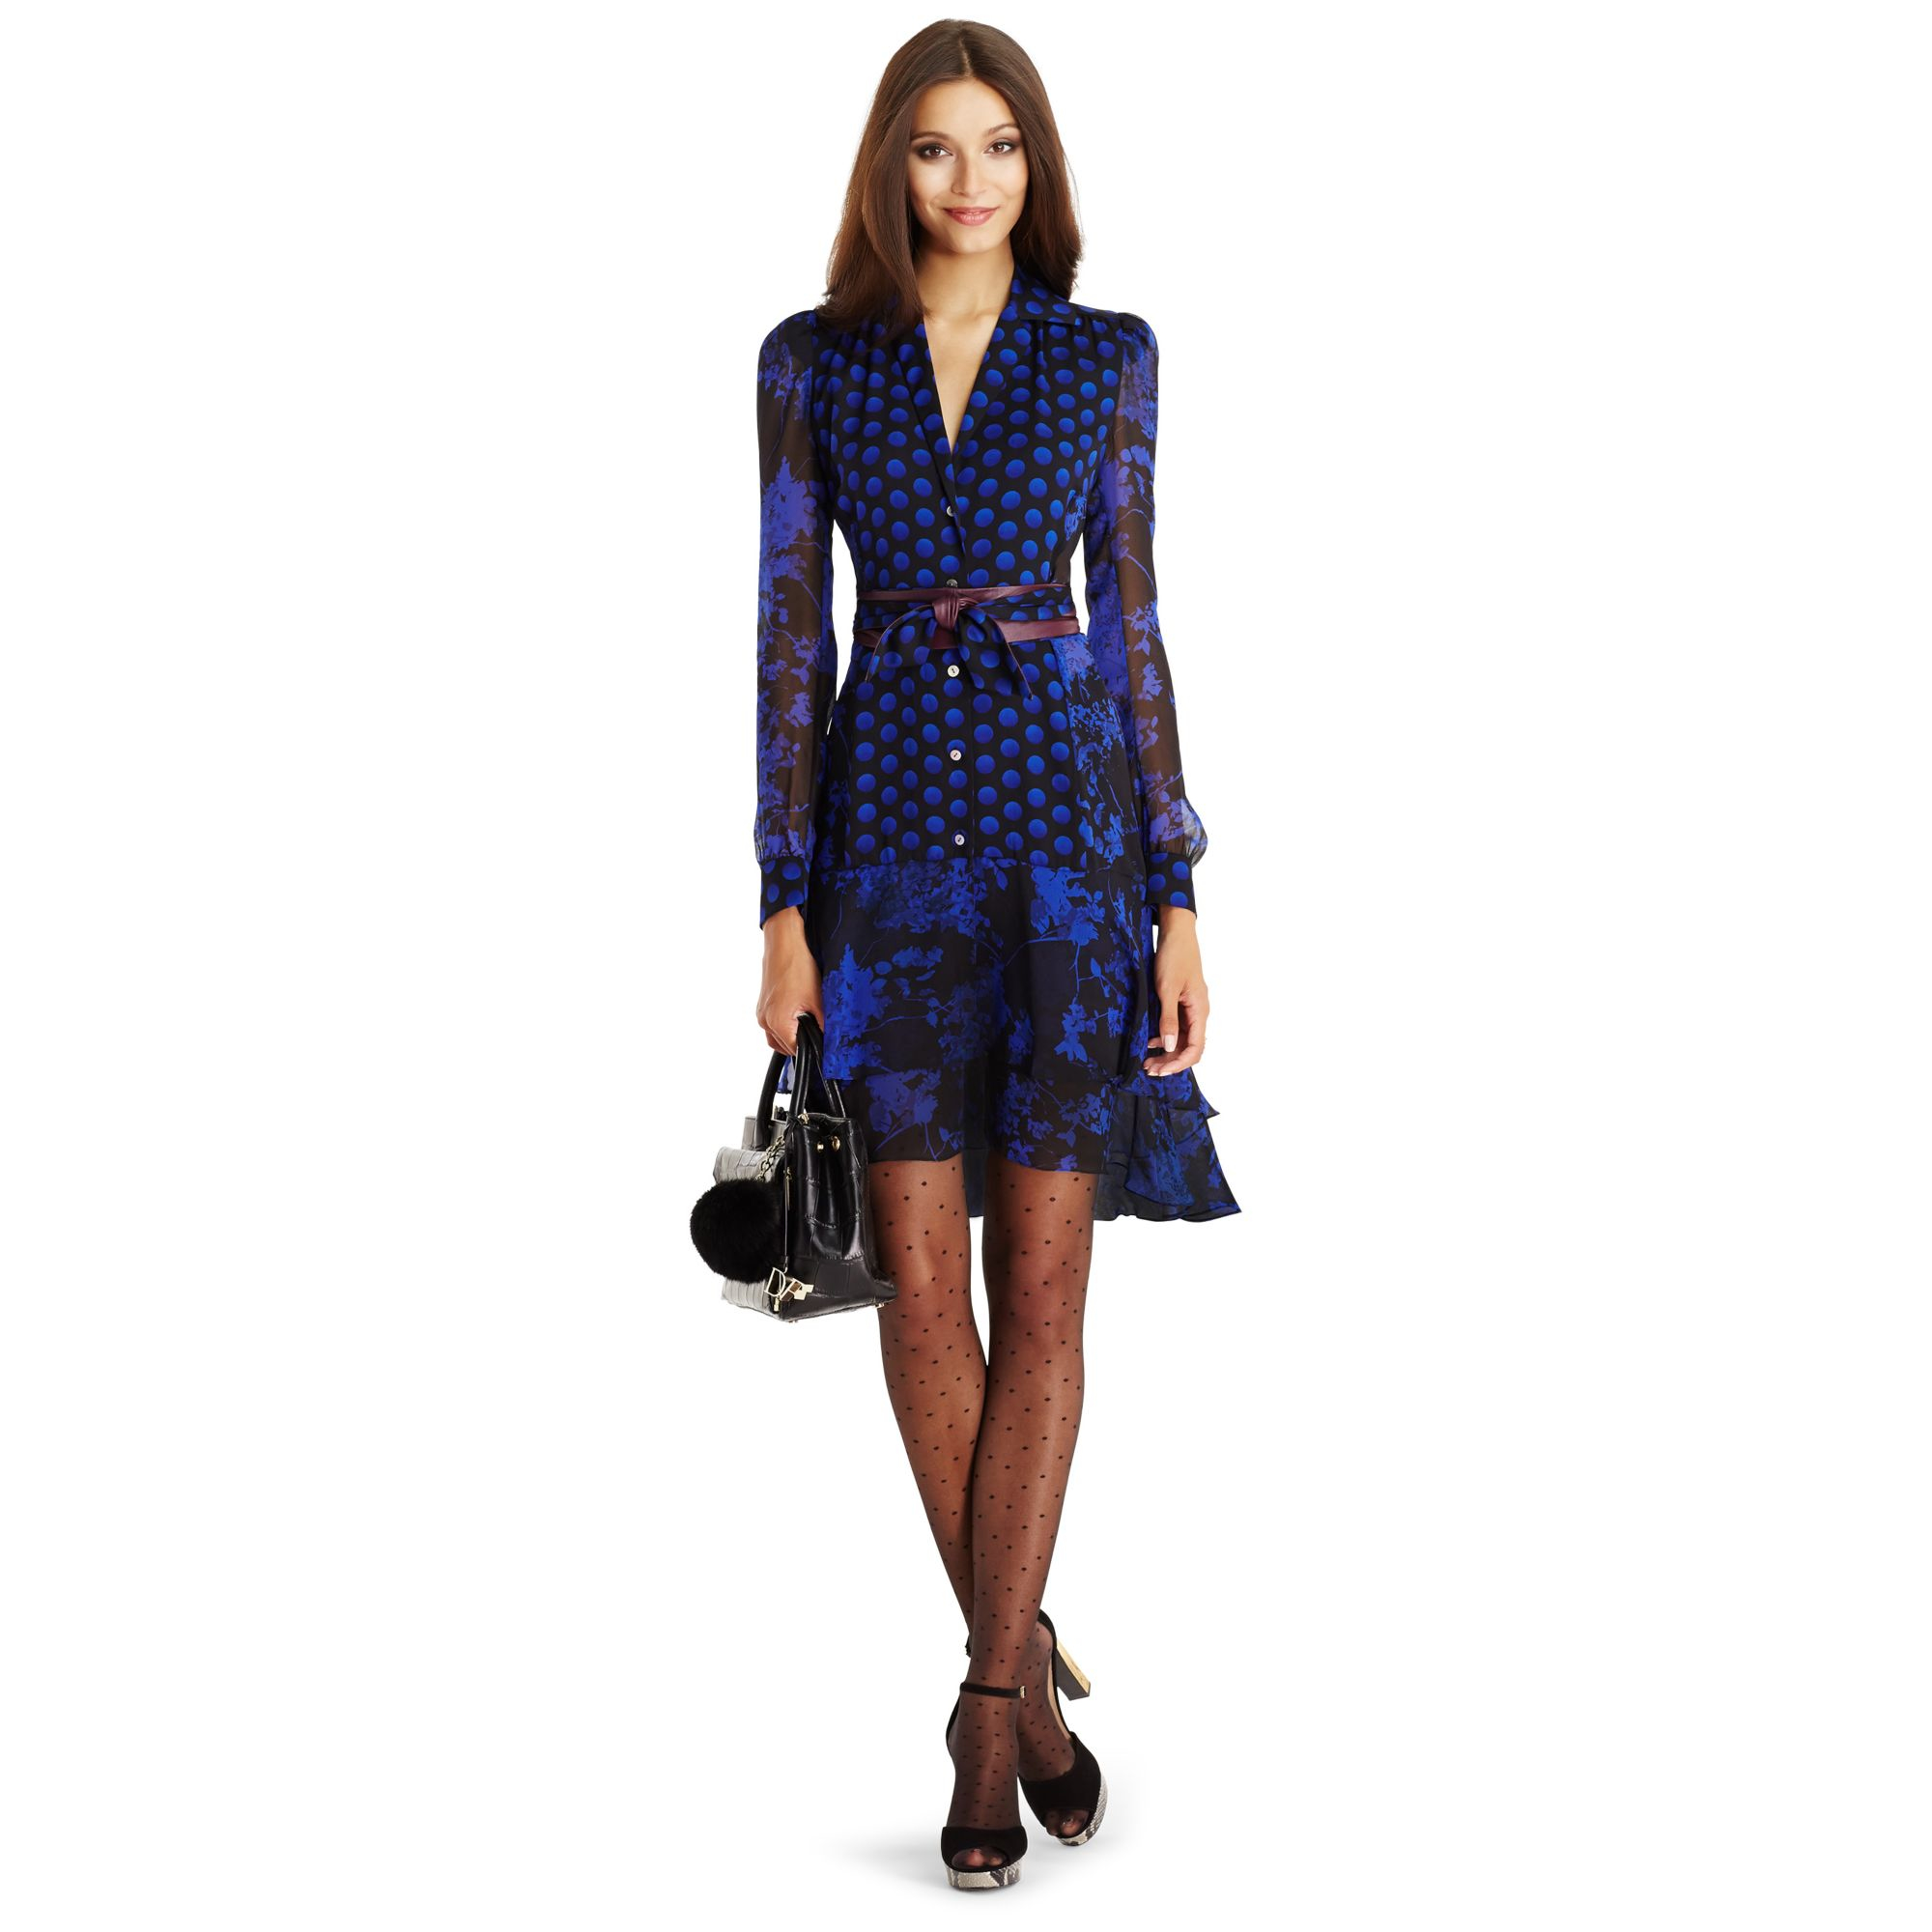 Diane von furstenberg dvf catherine chiffon shirt dress in for Diane von furstenberg clothes